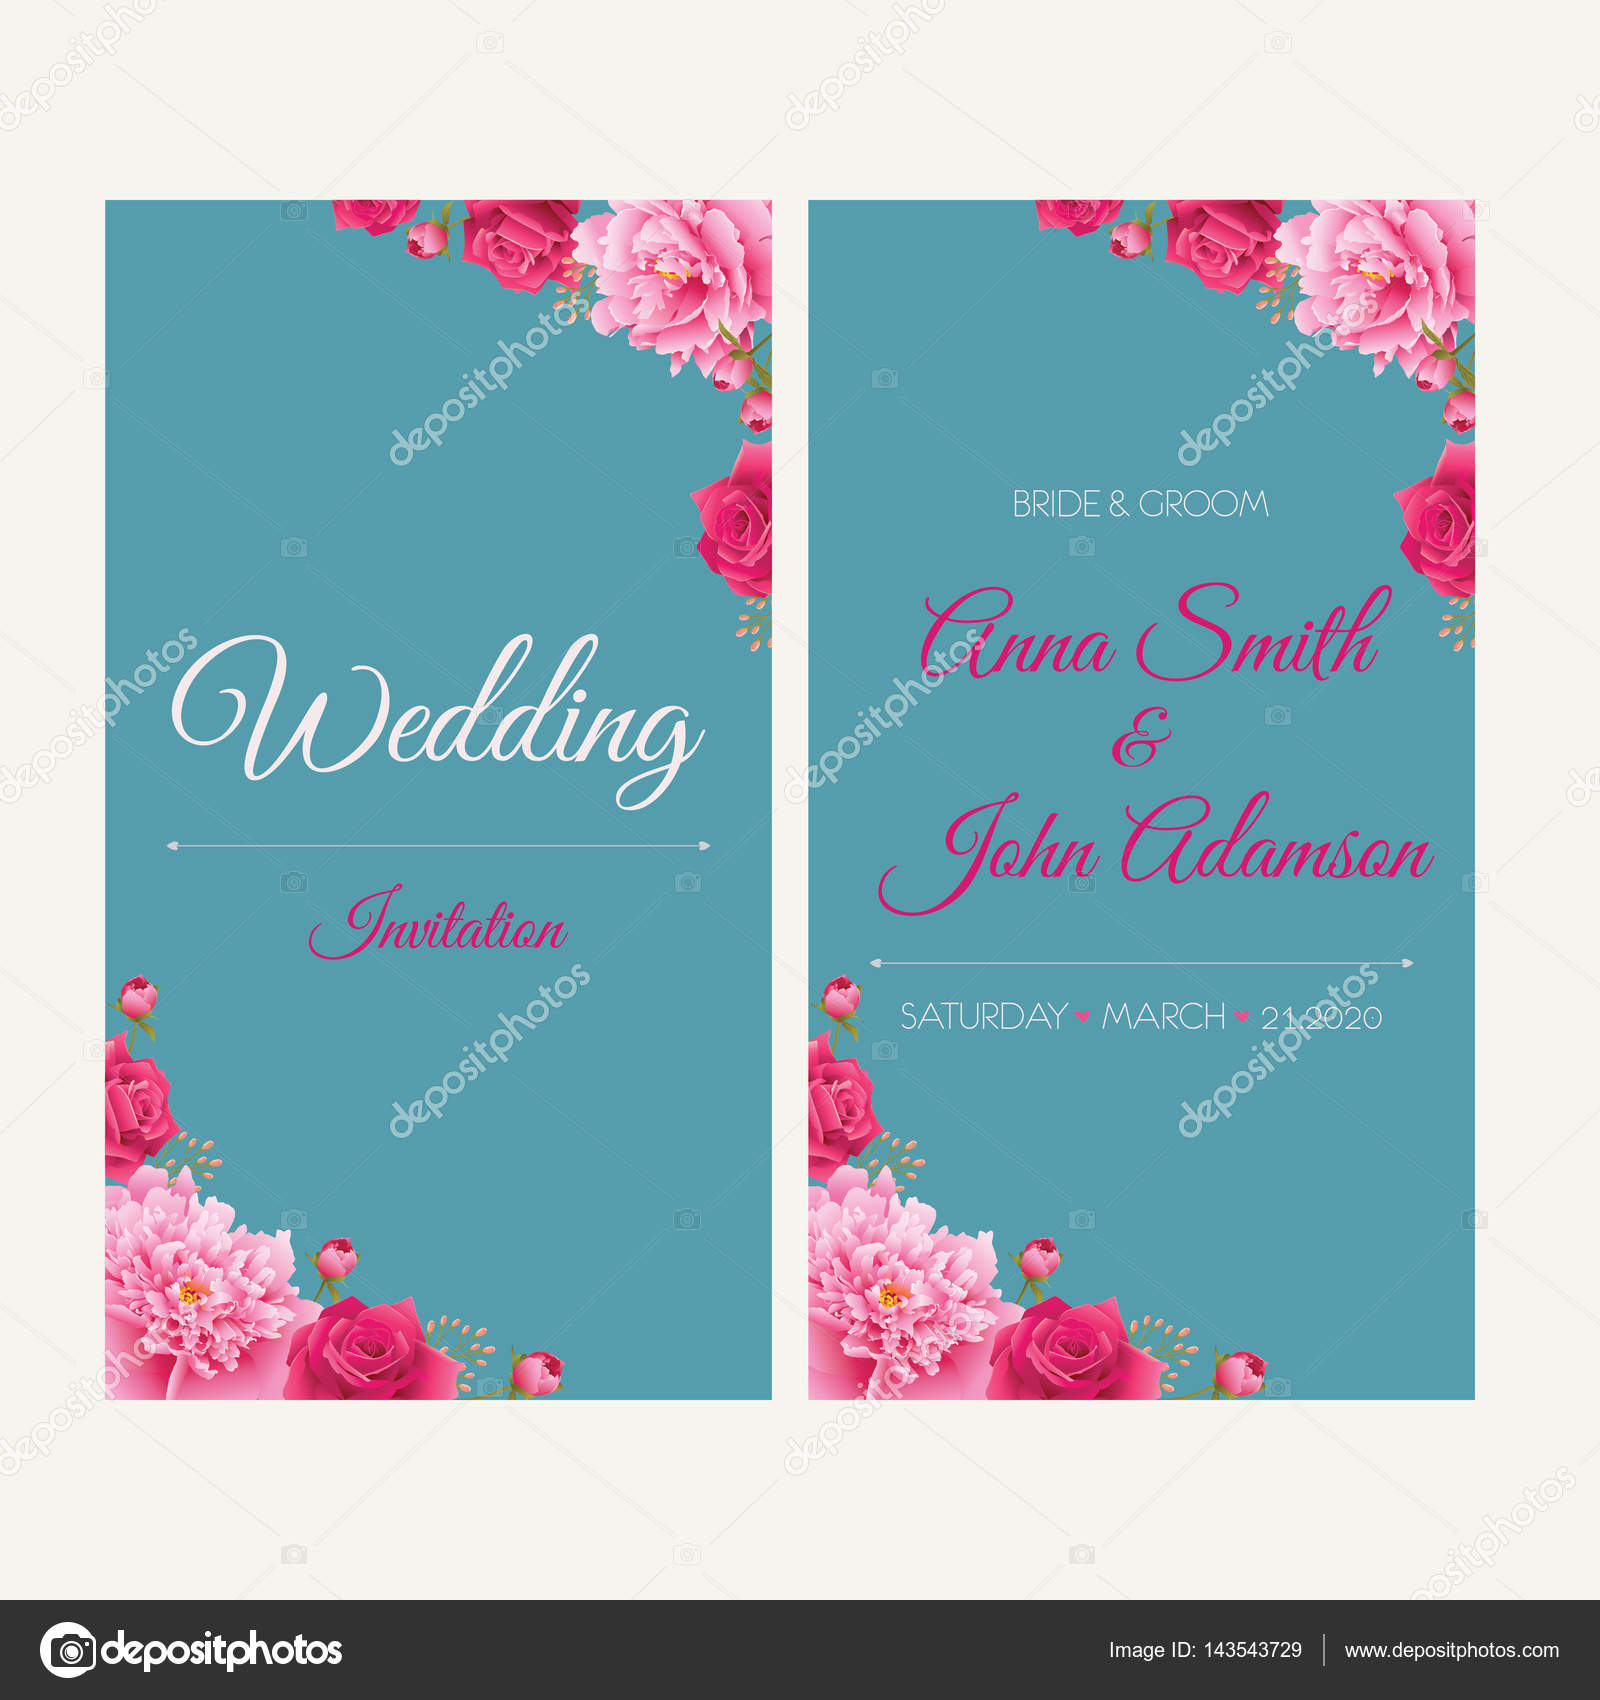 Wedding invitation thank you card save the date cards eps 10 wedding invitation thank you card save the date cardsding collectionwedding designinvitation cardromantic floral peonies and roses eps 10 stopboris Choice Image